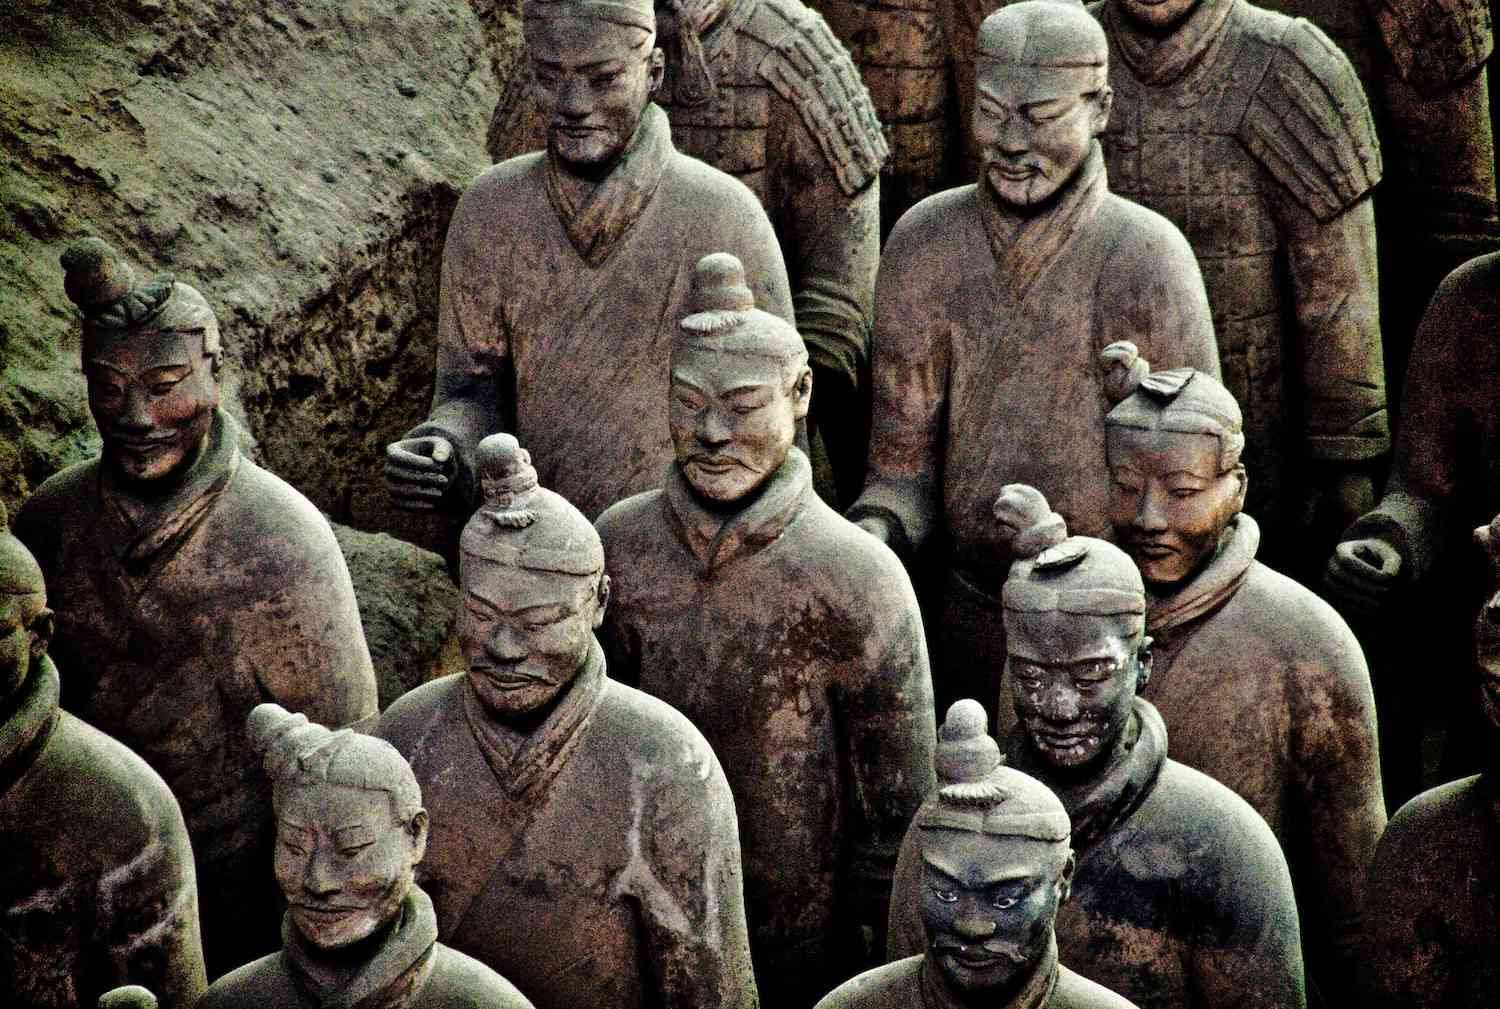 Terracotta soldiers lined up near the tomb of China's first emperor